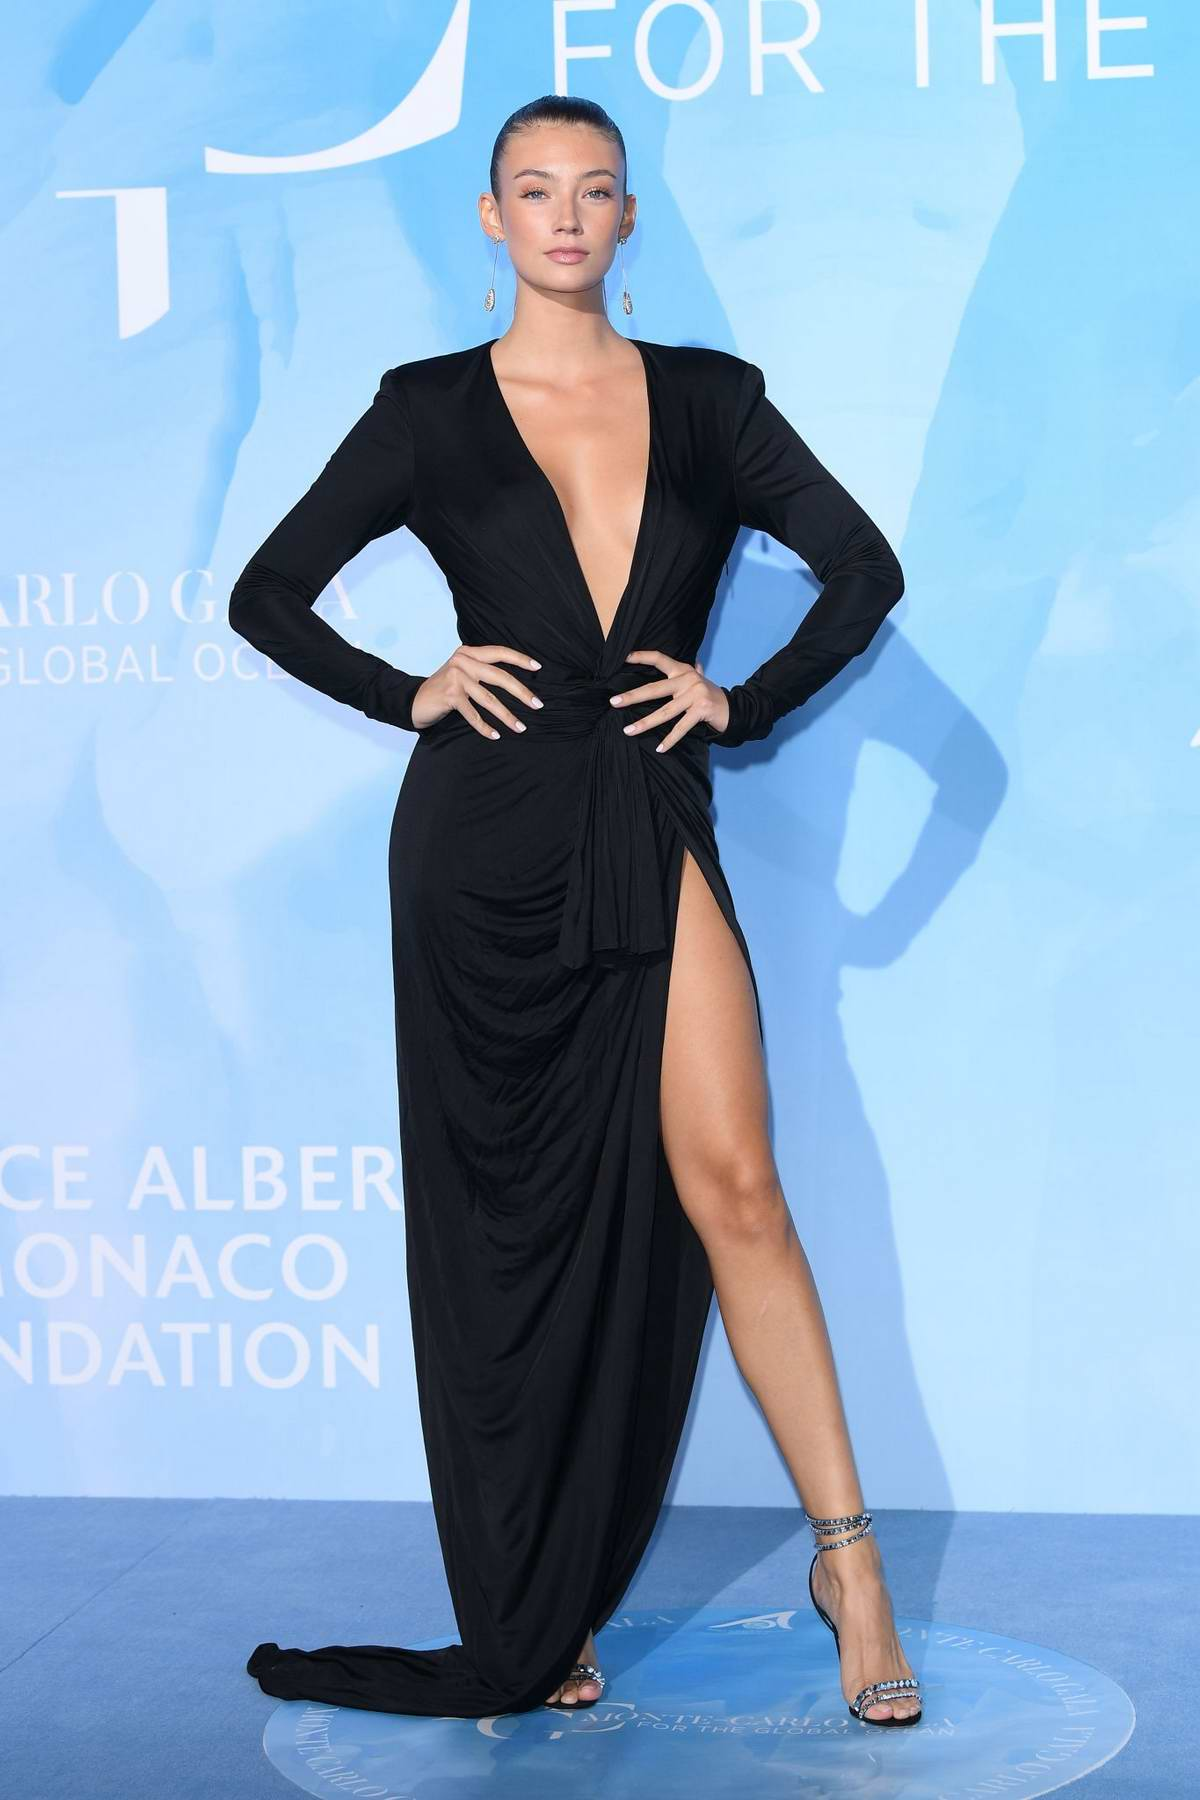 Lorena Rae attends the Gala for the Global Ocean in Monte Carlo, Monaco